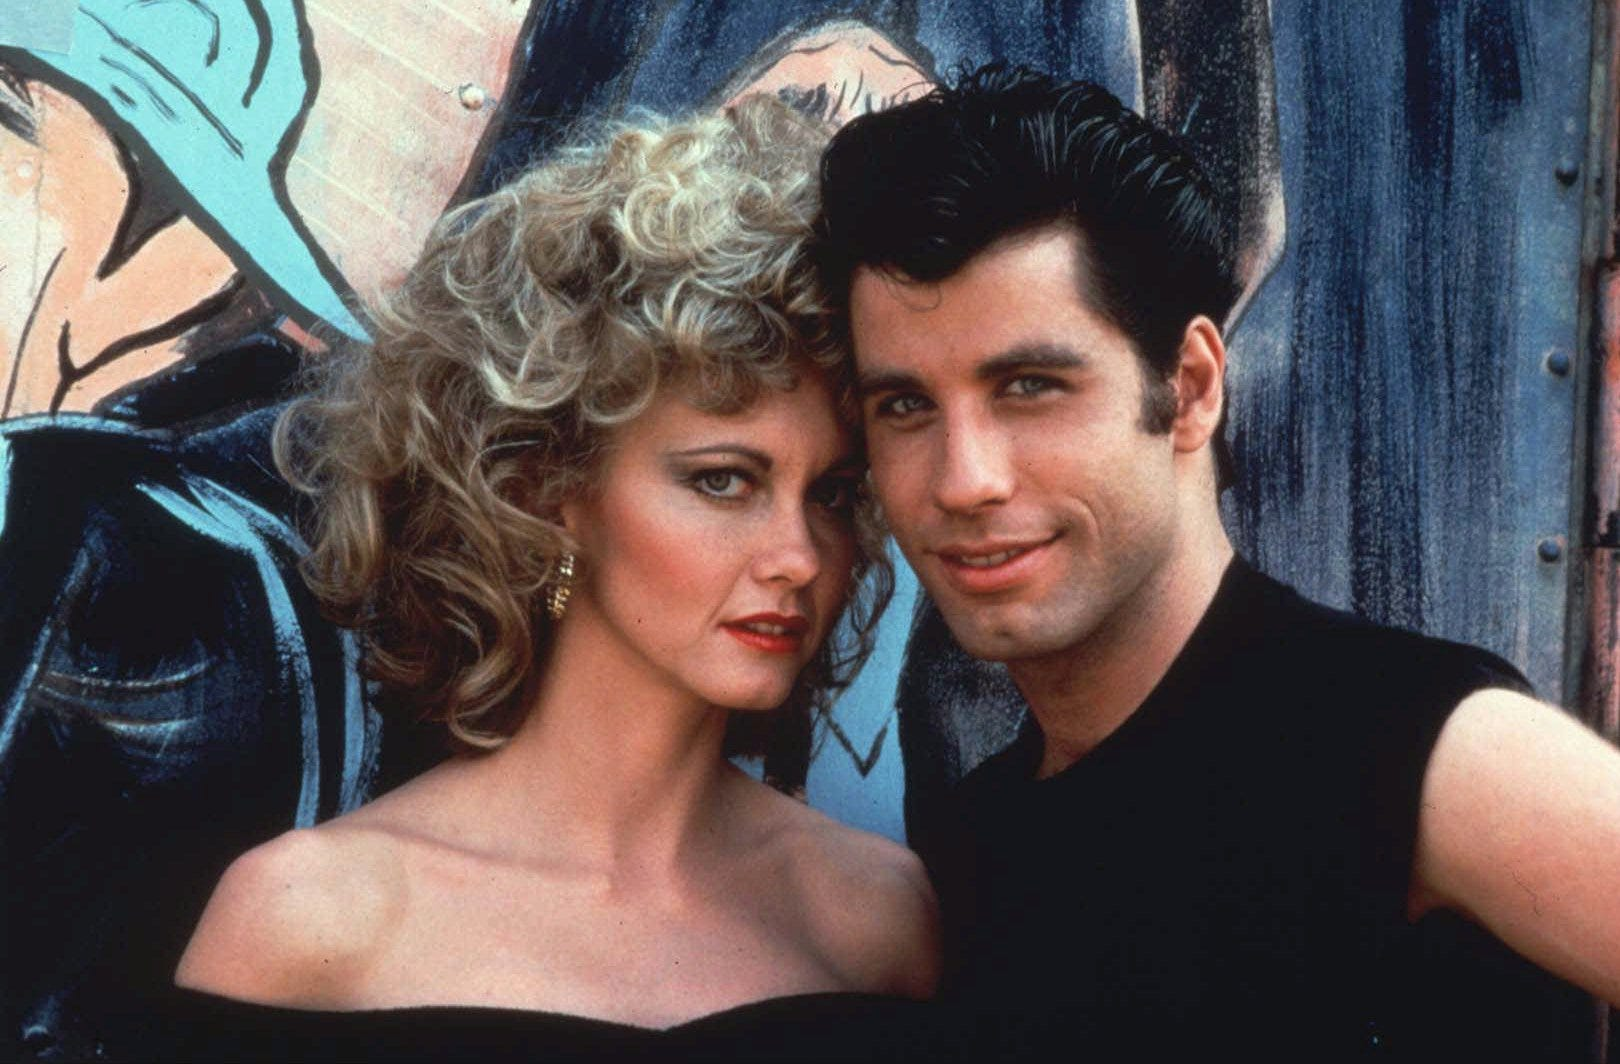 Grease stars John Travolta, Olivia Newton-John to reunite for singalongs and QAs